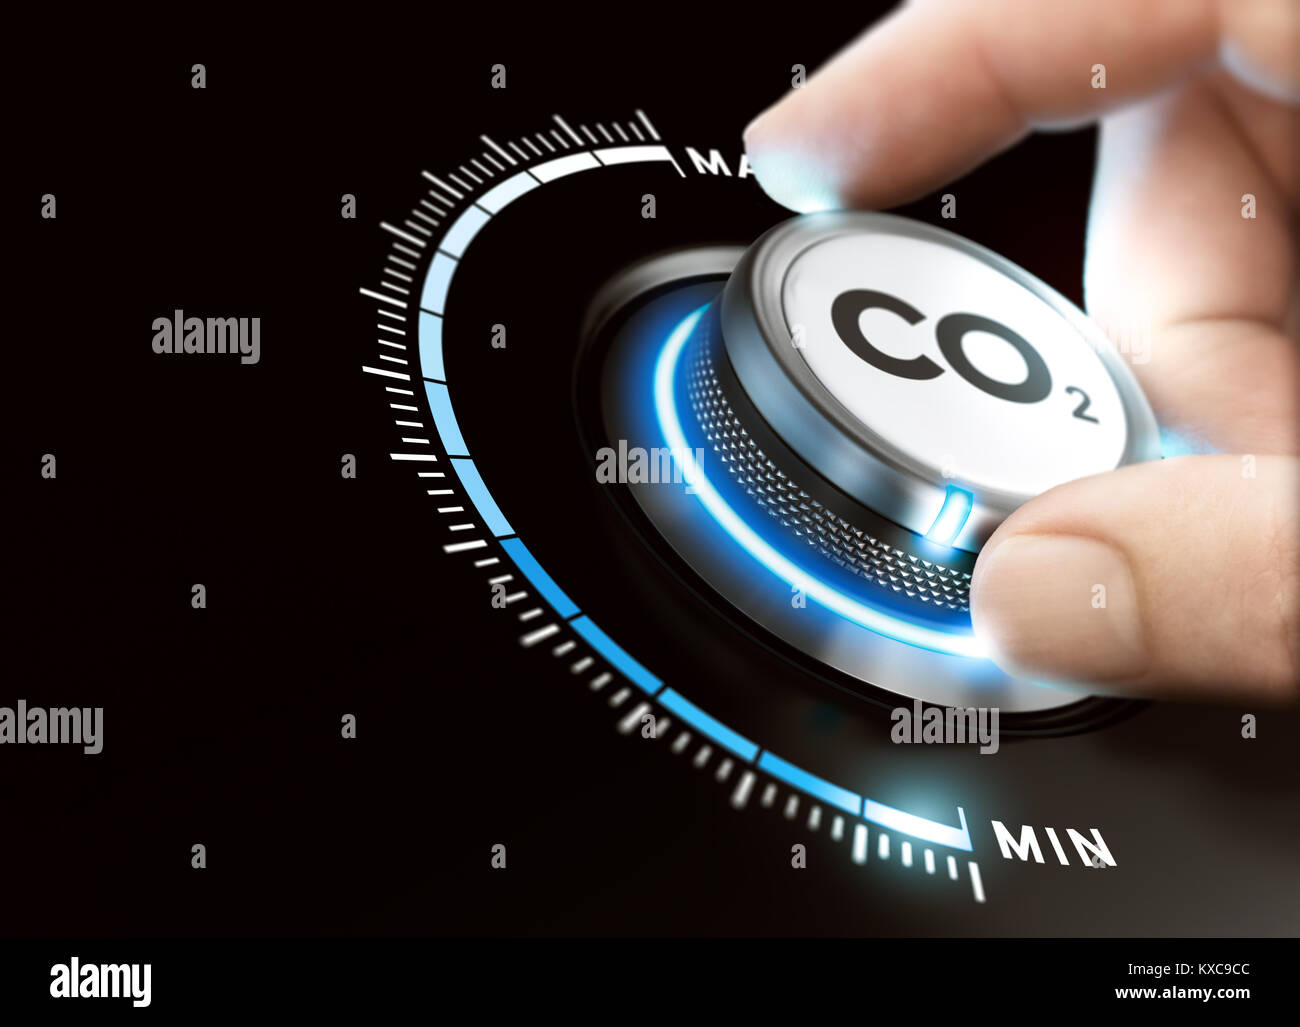 Man turning a carbon dioxyde knob to reduce emissions. CO2 reduction or removal concept. Composite image between - Stock Image